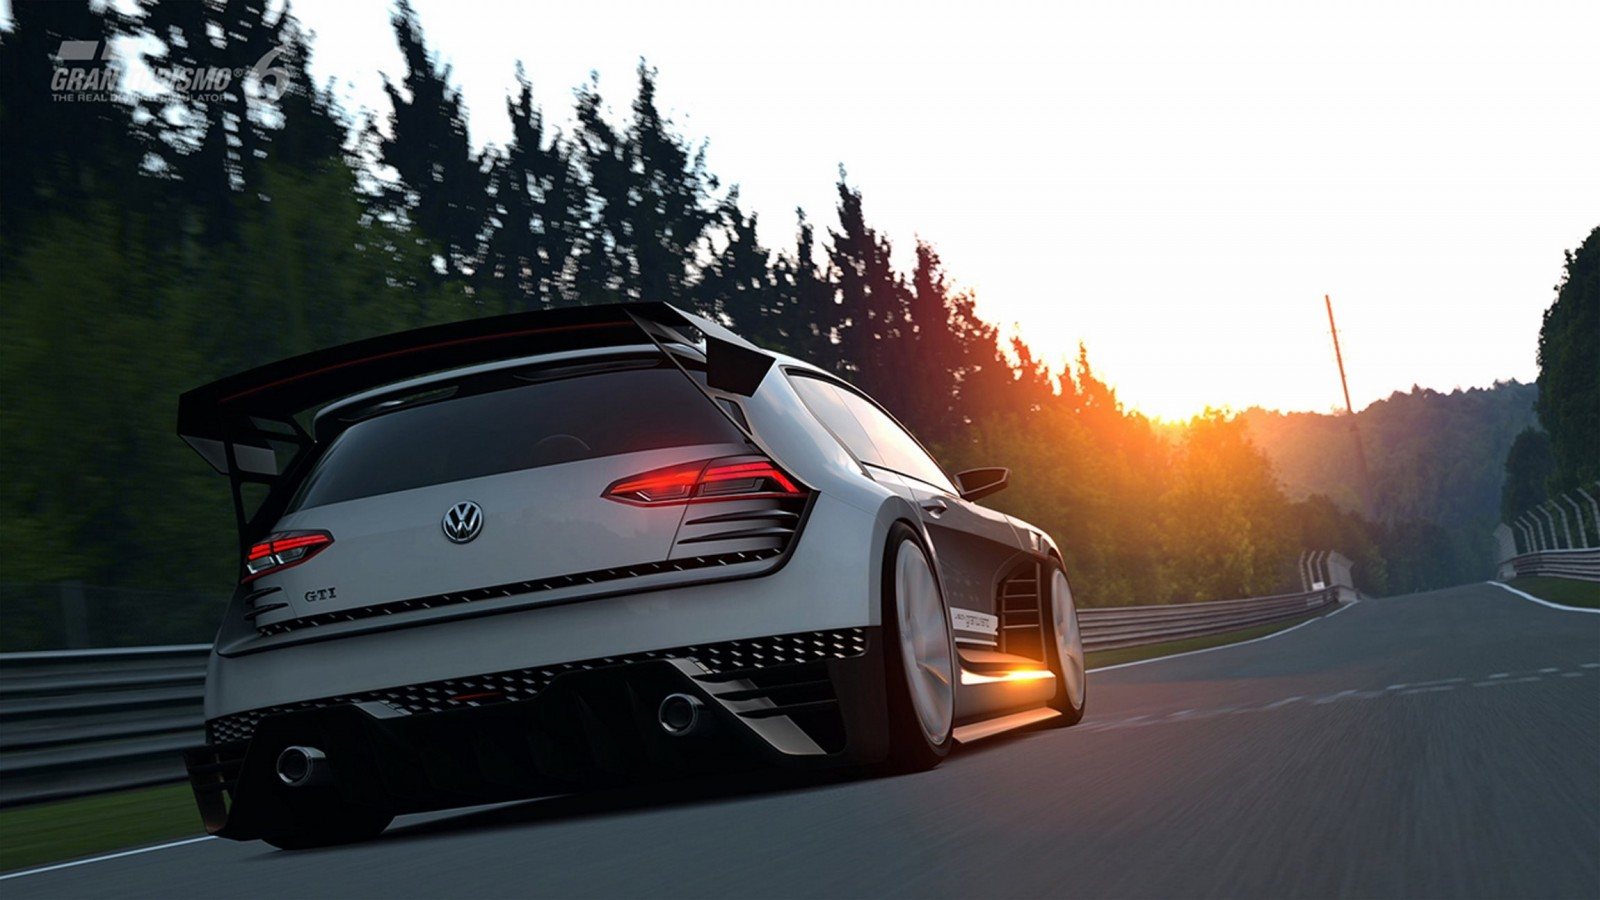 2015 Volkswagen GTI SuperSport 19